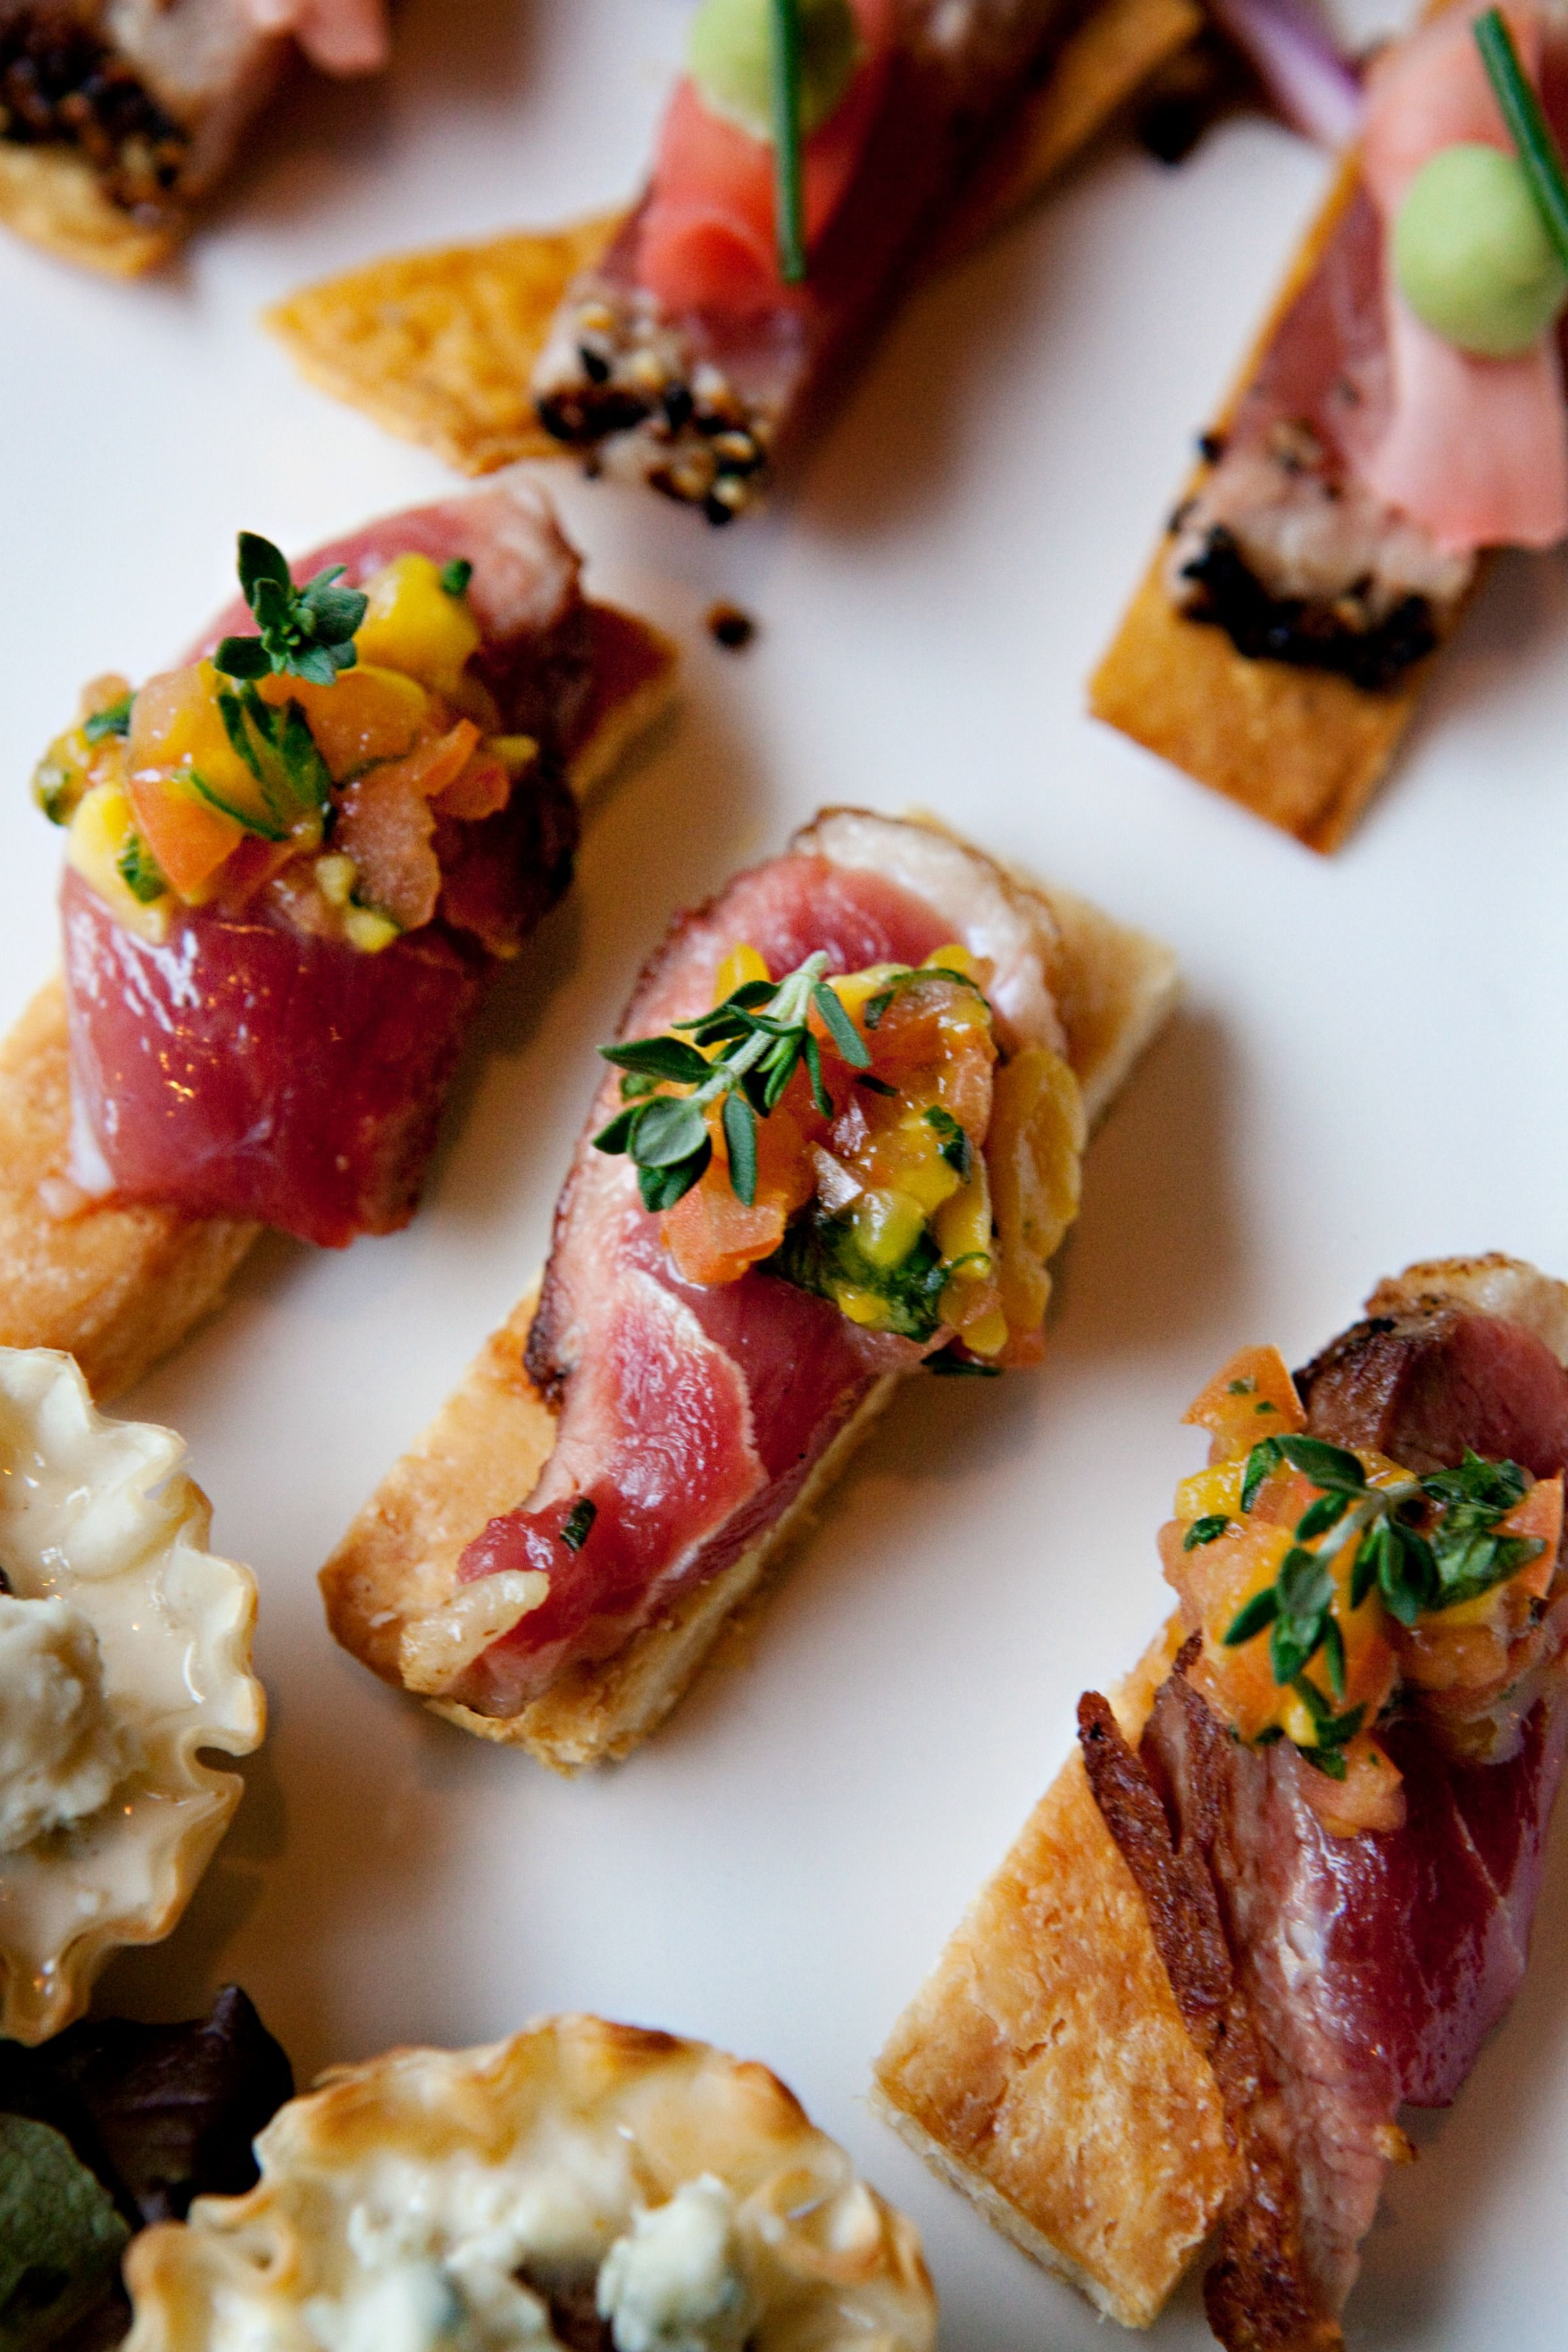 Puff Pastry With Sliced Smoked Duck And Mango Salsa Cocktail Hour Hors D Oeuvres Weddings